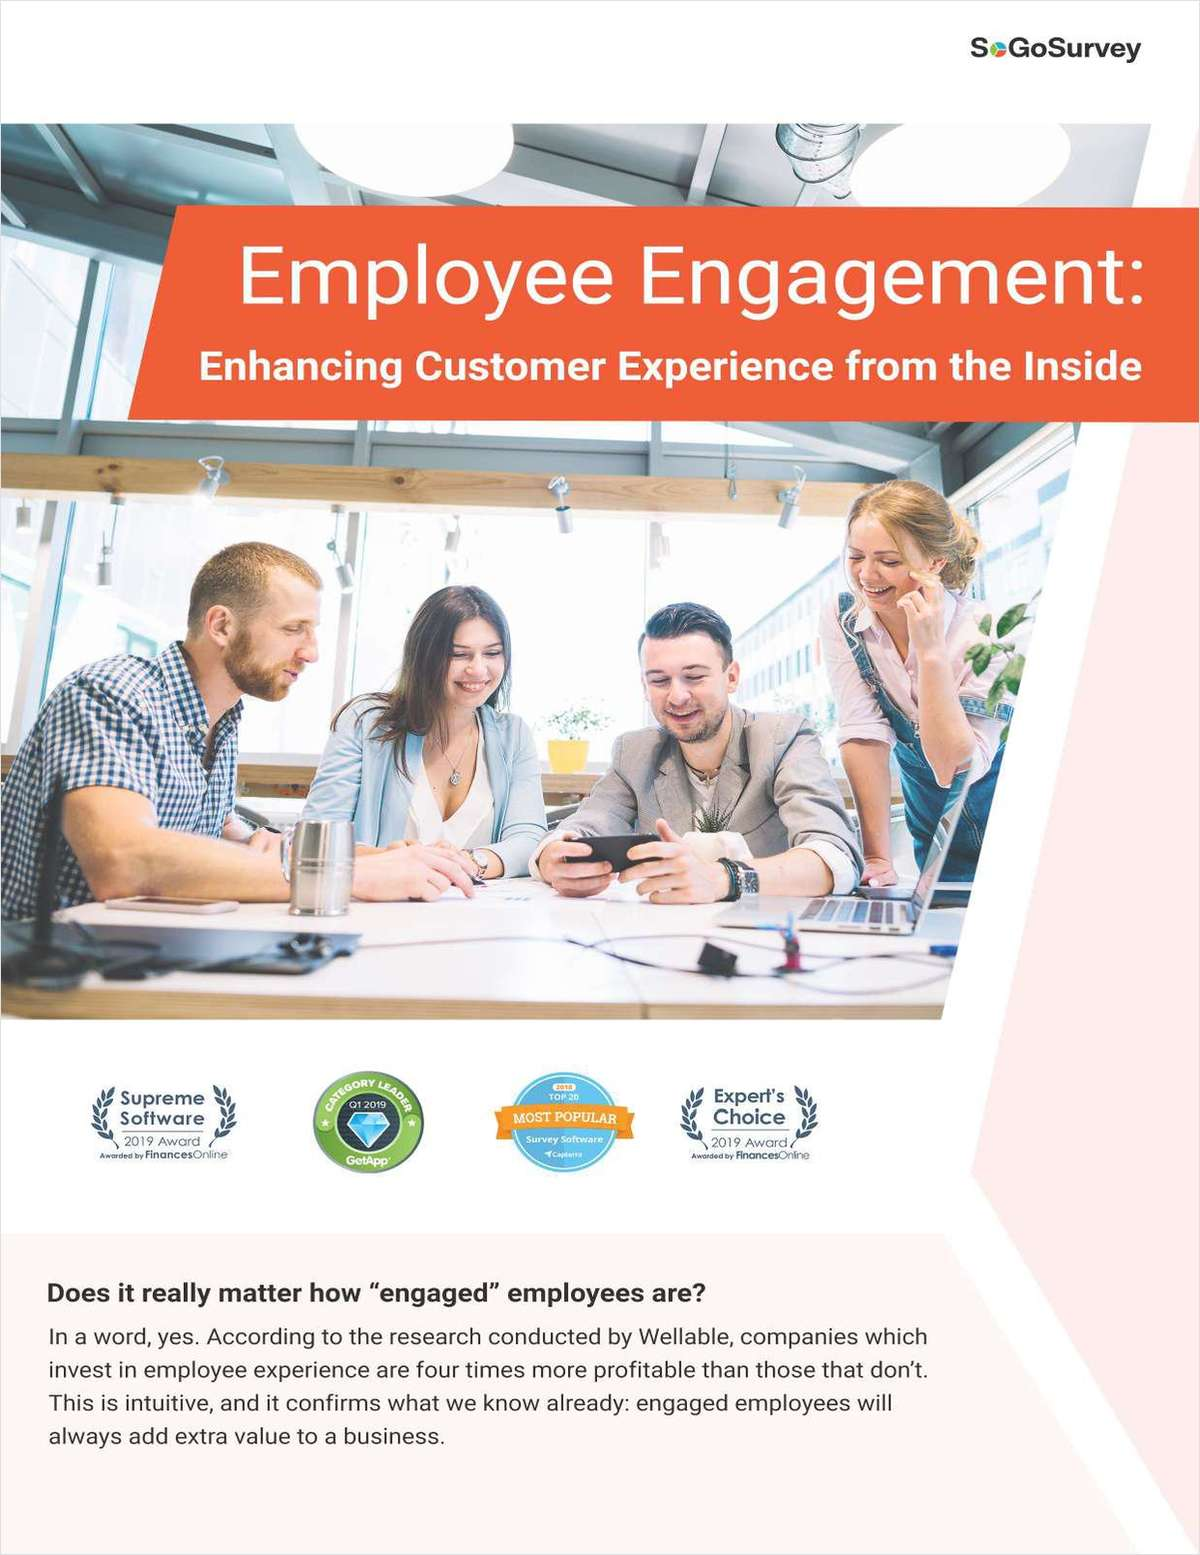 Employee Engagement: Enhancing Customer Experience from The Inside